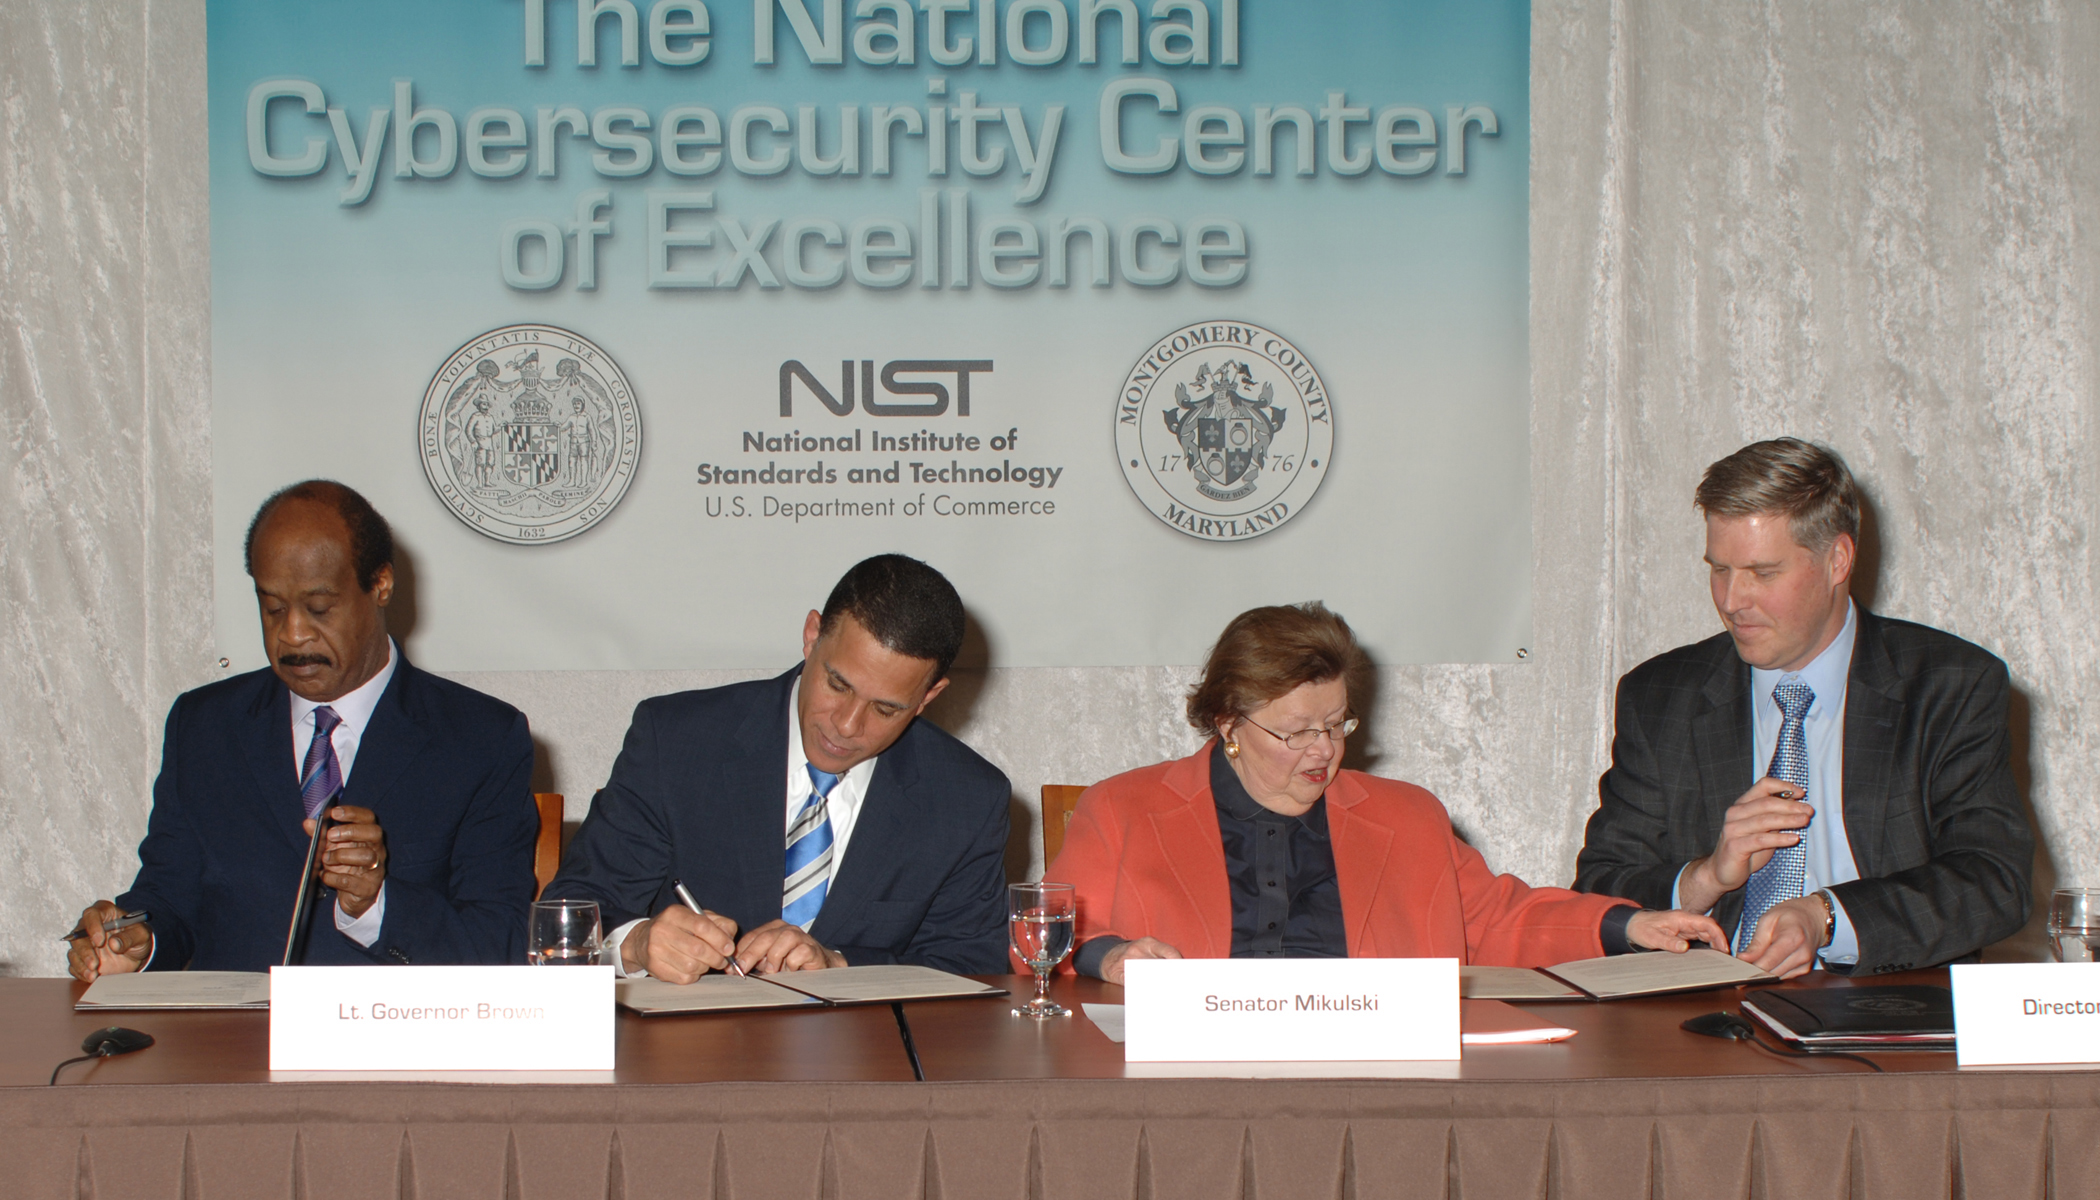 The State of Maryland and Montgomery County, Md., partner with NIST in the New National Cybersecurity Center of Excellence. At the Memorandum of Understanding Signing Feb. 21, from left to right, Montgomery County Executive Isiah Leggett, Maryland Lt. Governor Anthony Brown, U.S. Senator for Maryland Barbara Mikulski and Under Secretary of Commerce for Standards and Technology and NIST Director Patrick Gallagher [image courtesy NIST].